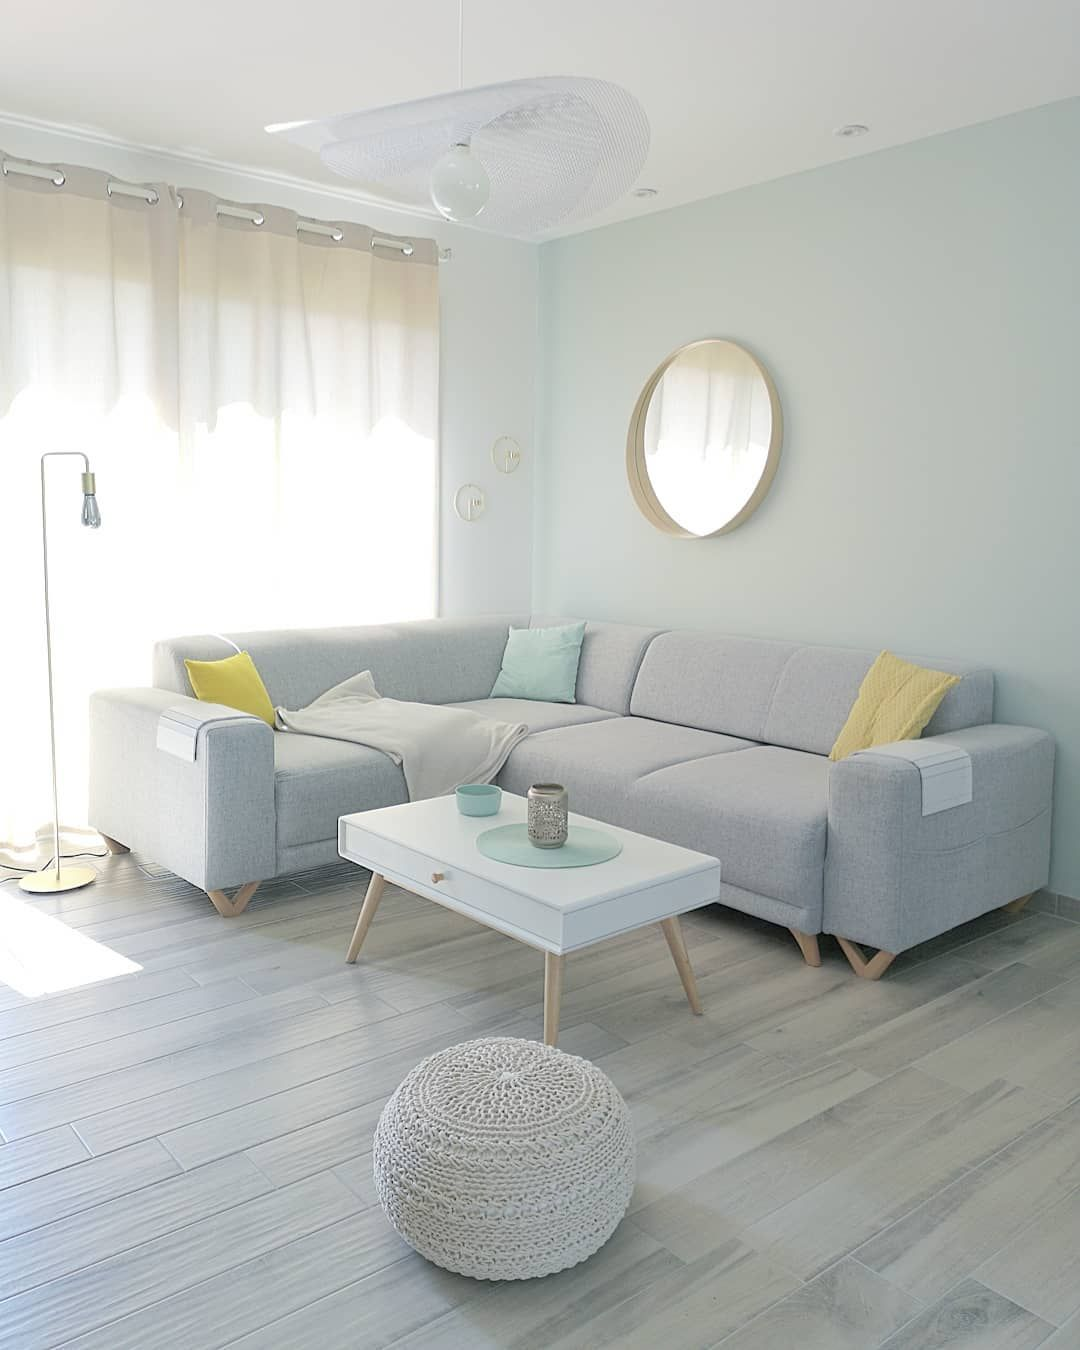 New the 10 best home decor with pictures lavantage